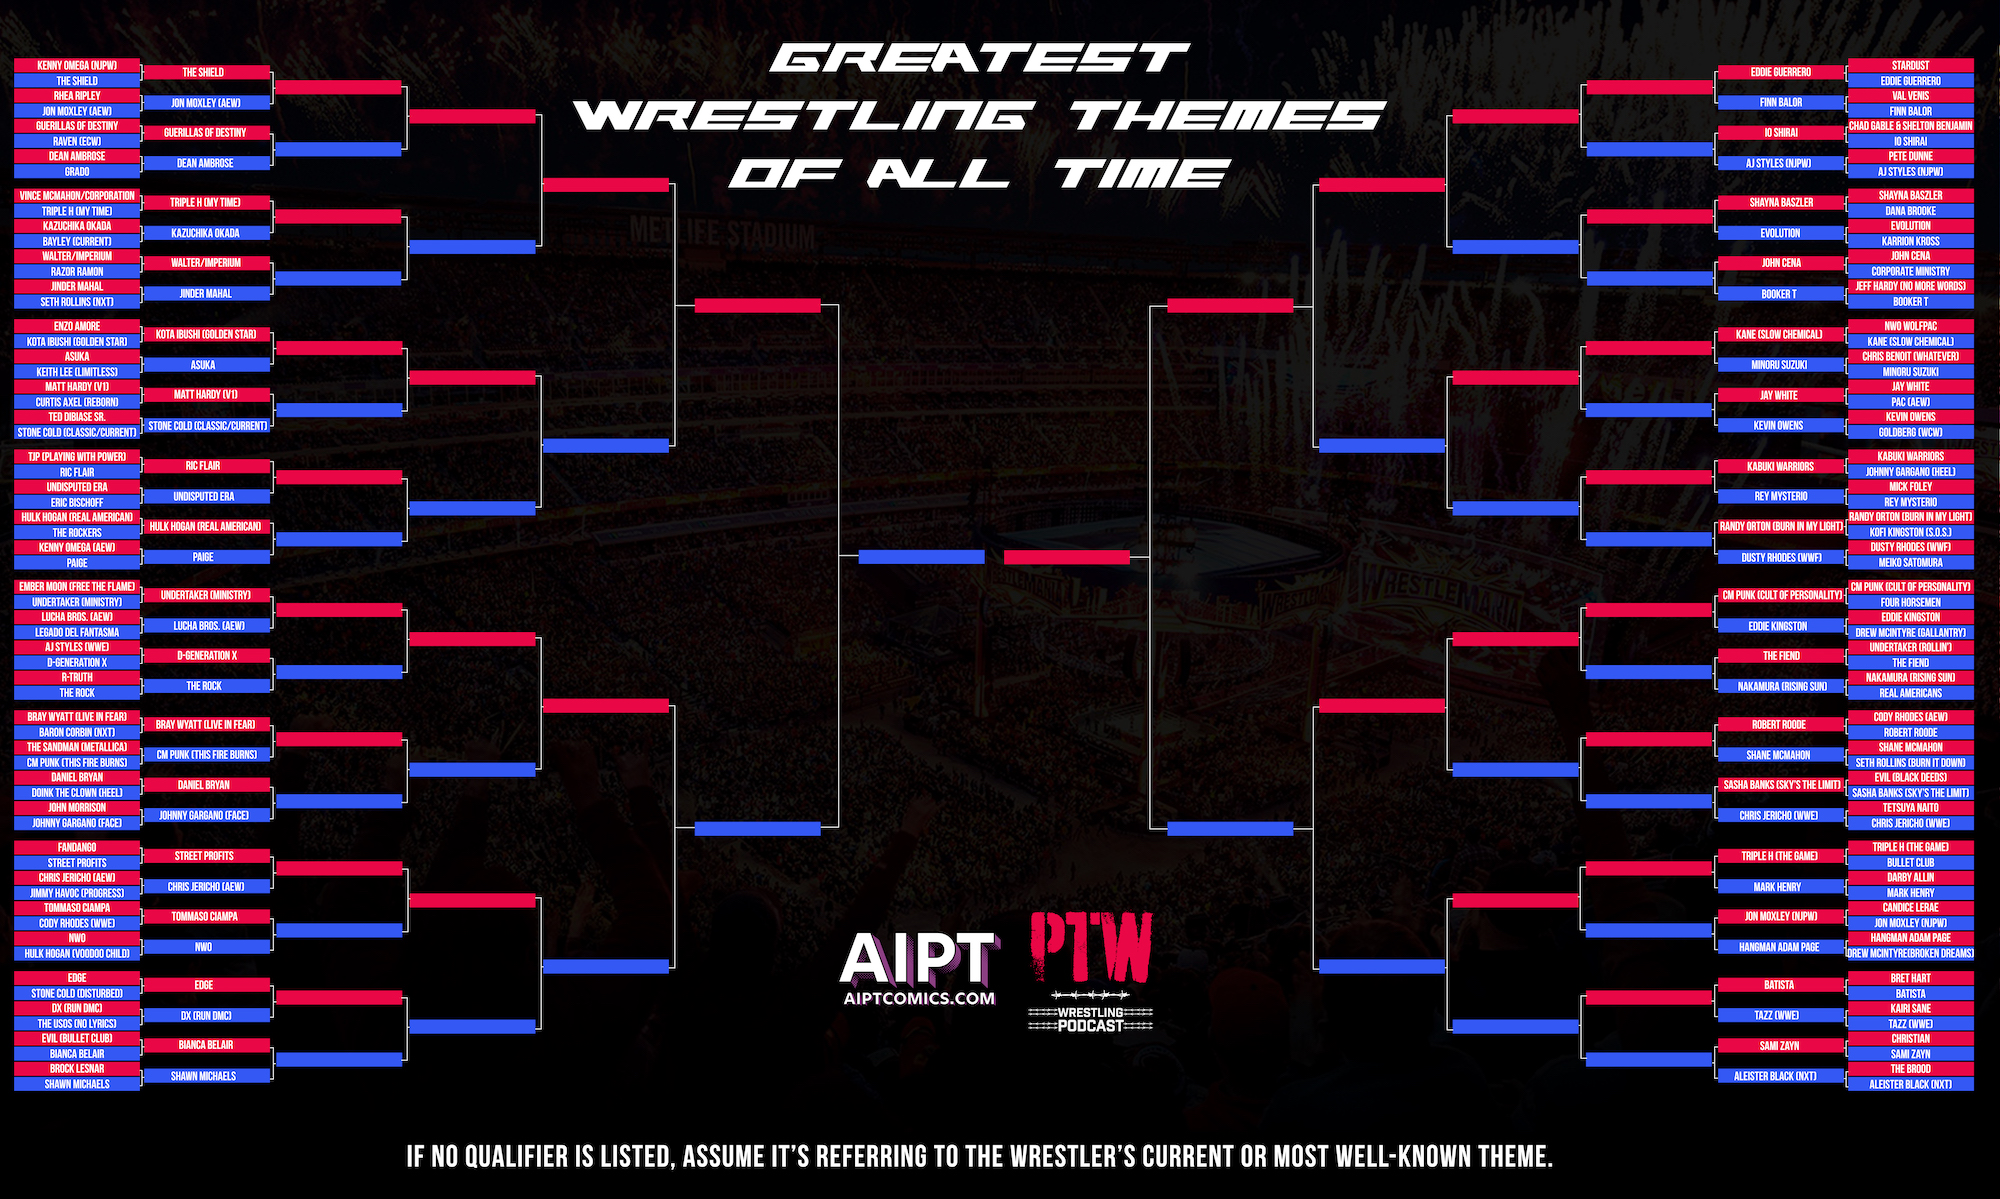 The Greatest Wrestling Themes of All Time: Round 2 A